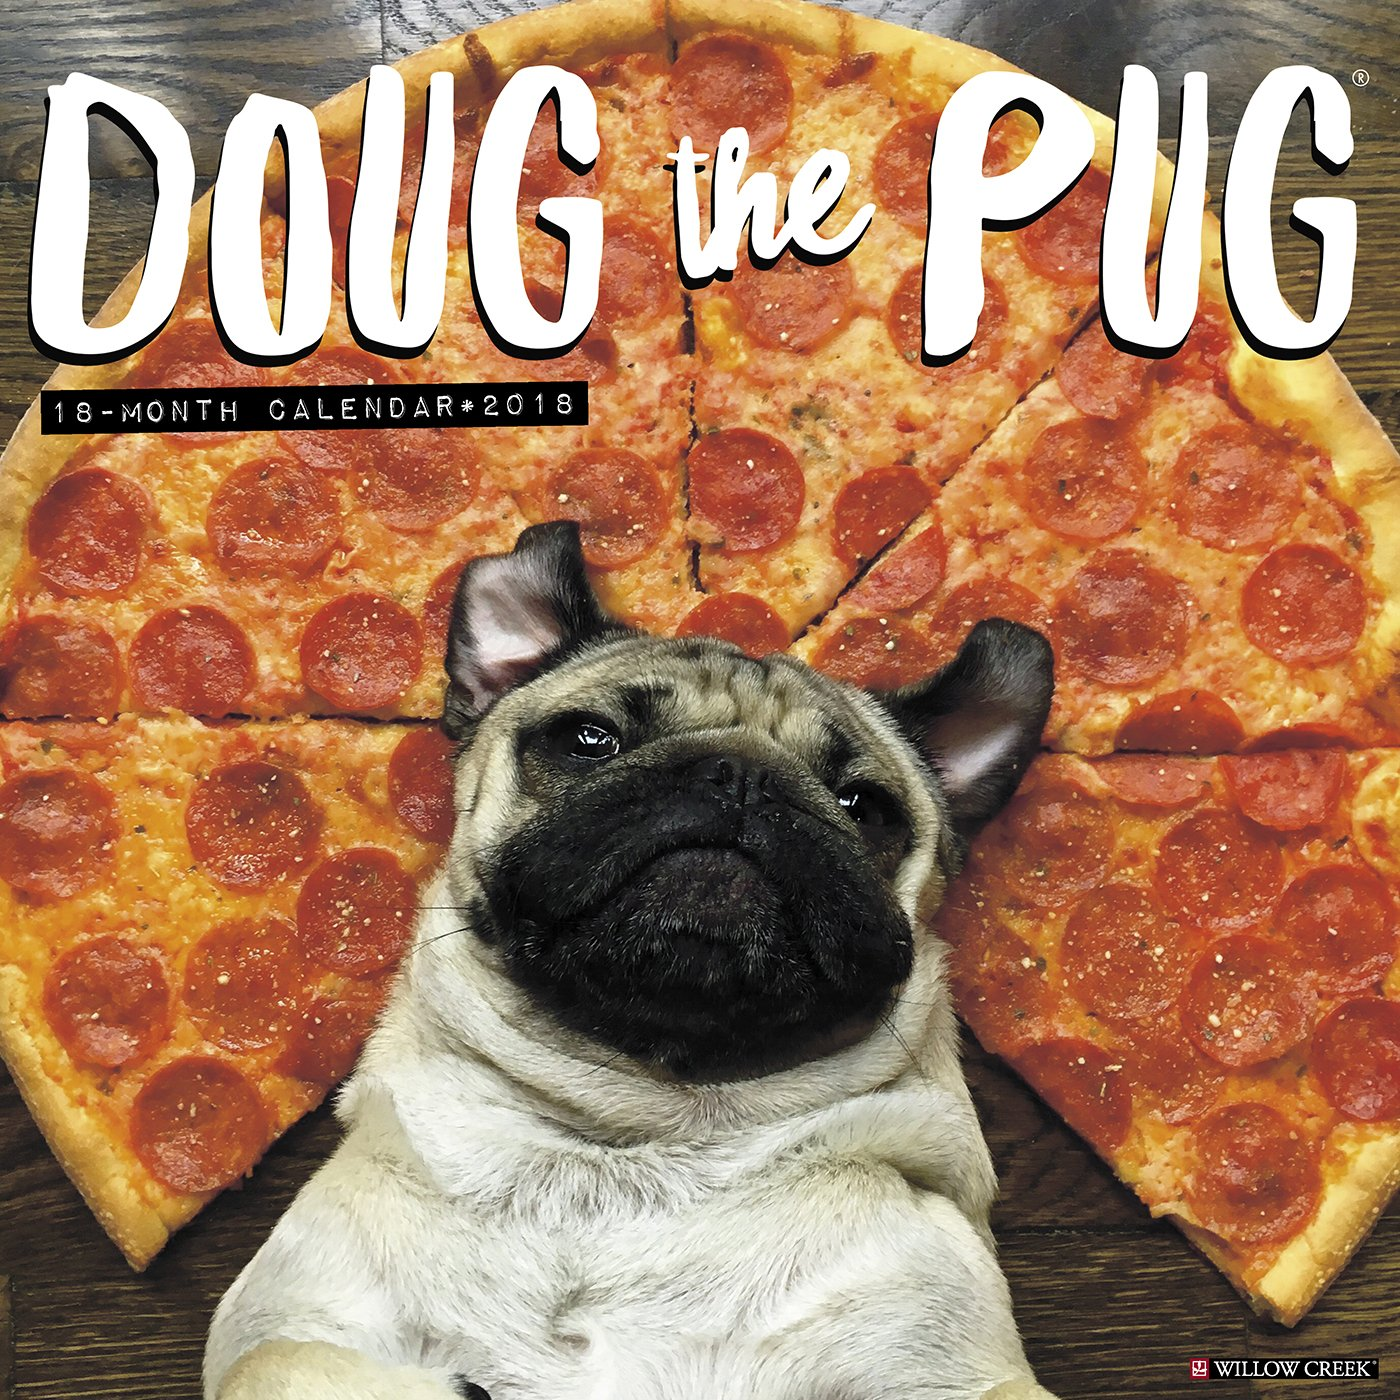 Download Doug the Pug 2018 Wall Calendar (Dog Breed Calendar) ebook